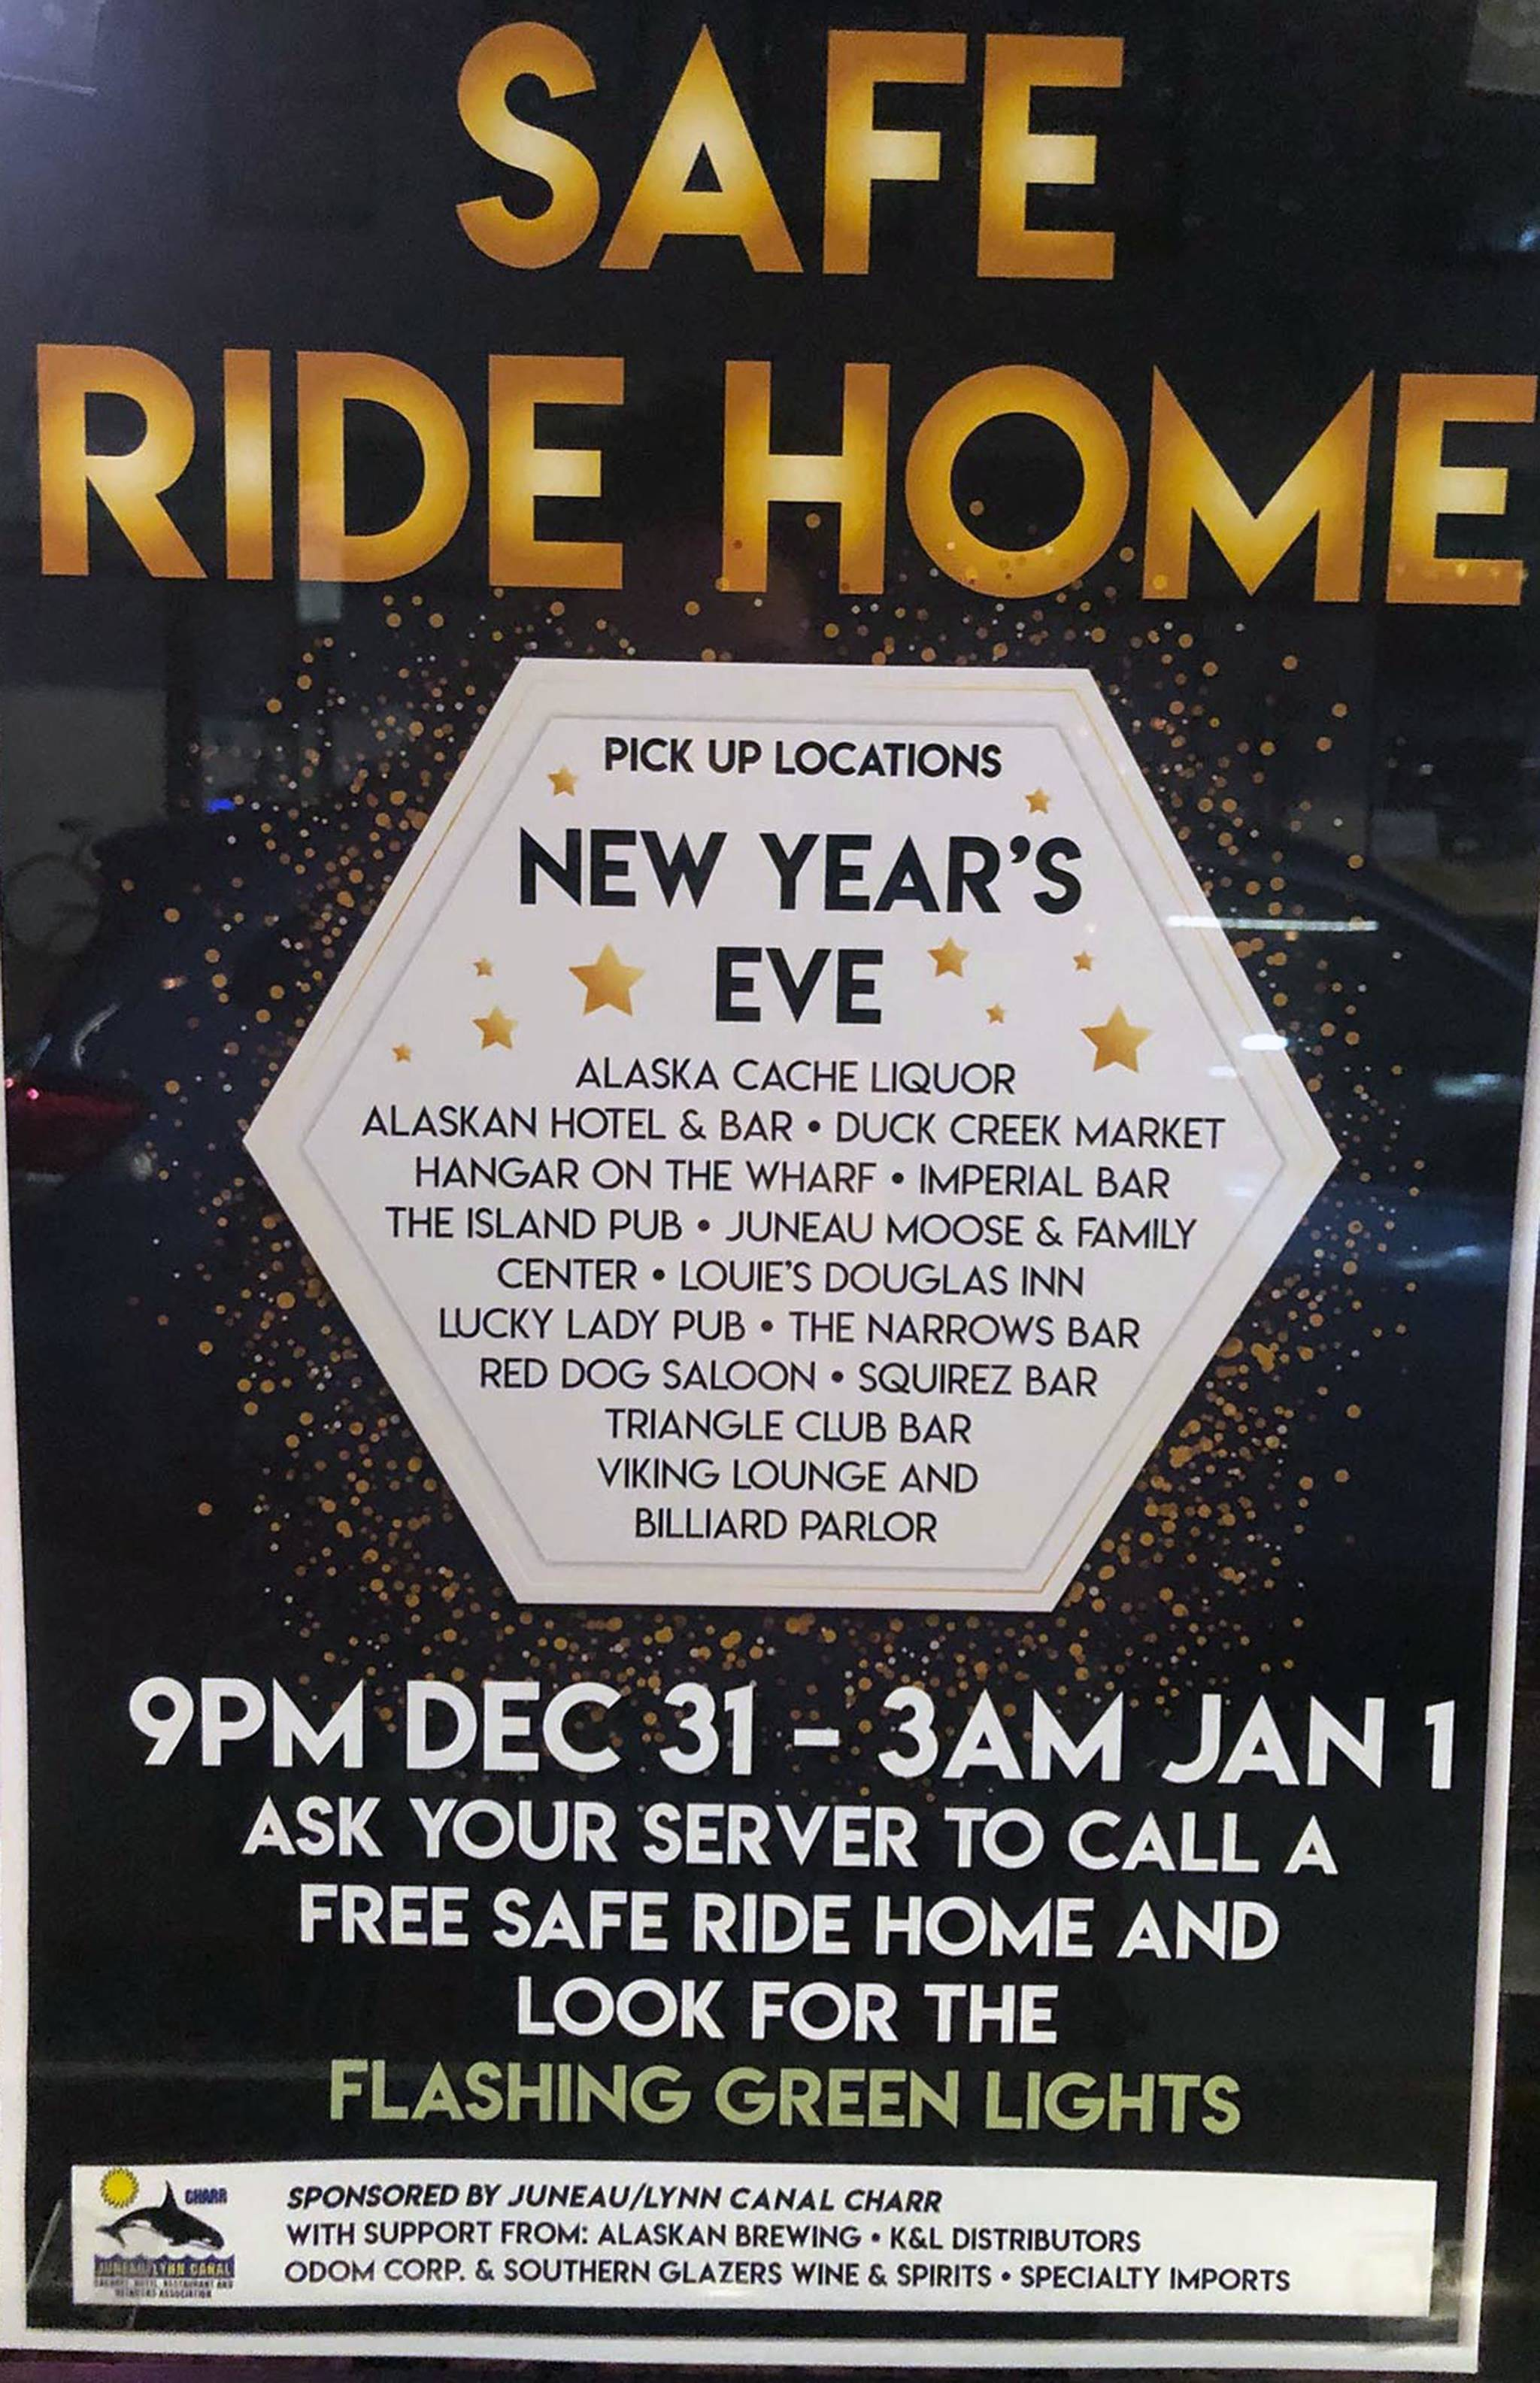 Don't drink and drive on New Year's Eve, ride safe for free